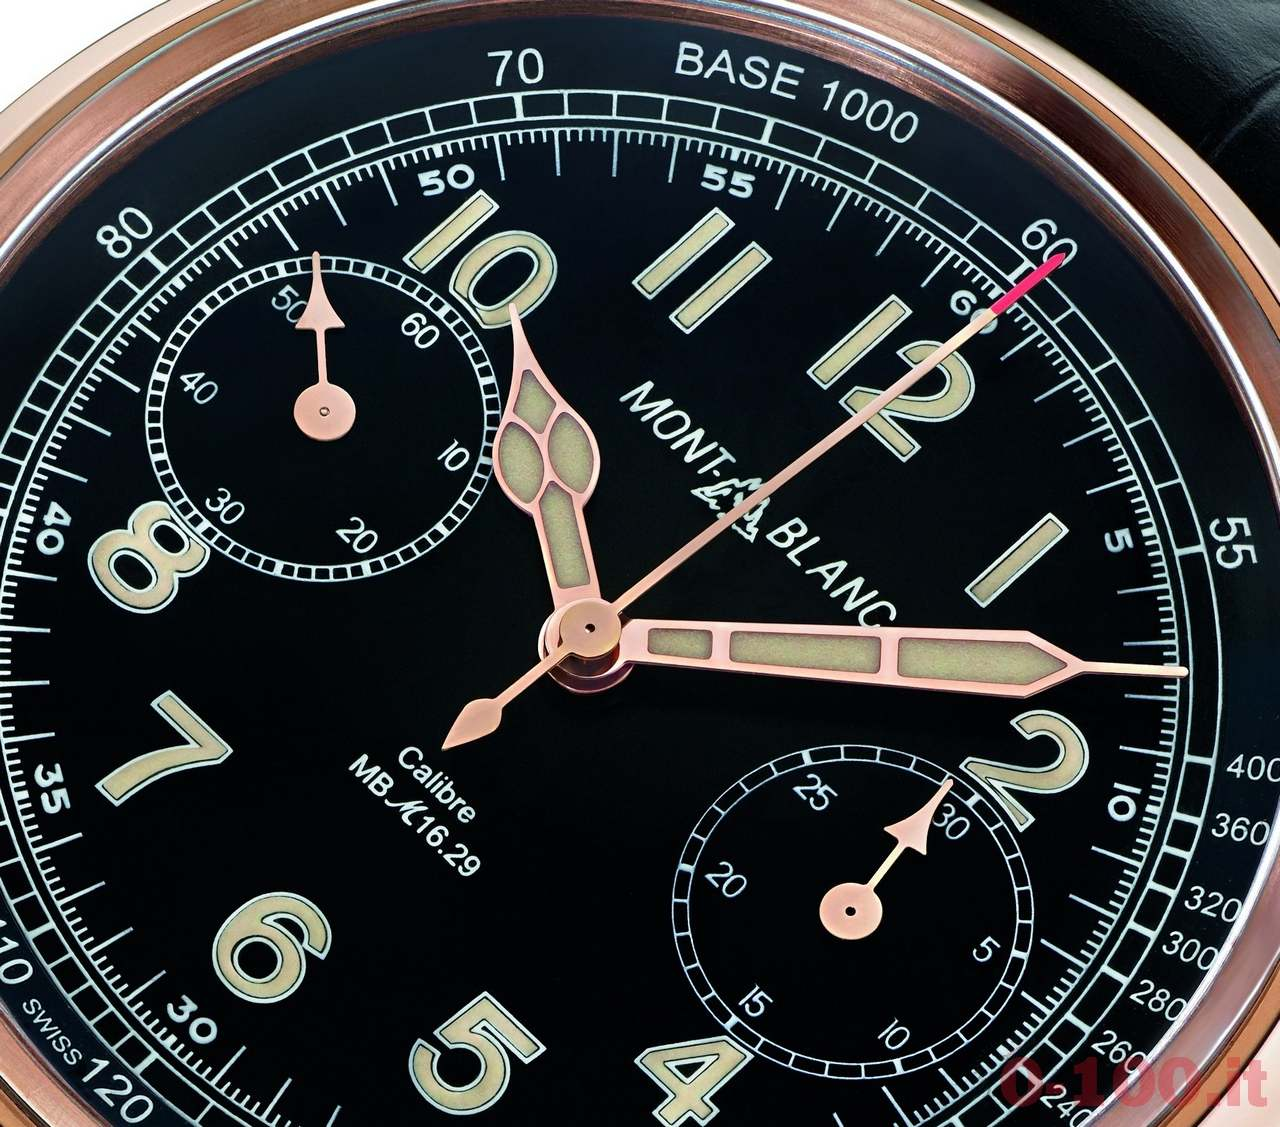 siar-2015-montblanc-1858-chronograph-tachymeter-limited-edition-ref-112637-prezzo-price_0-1003